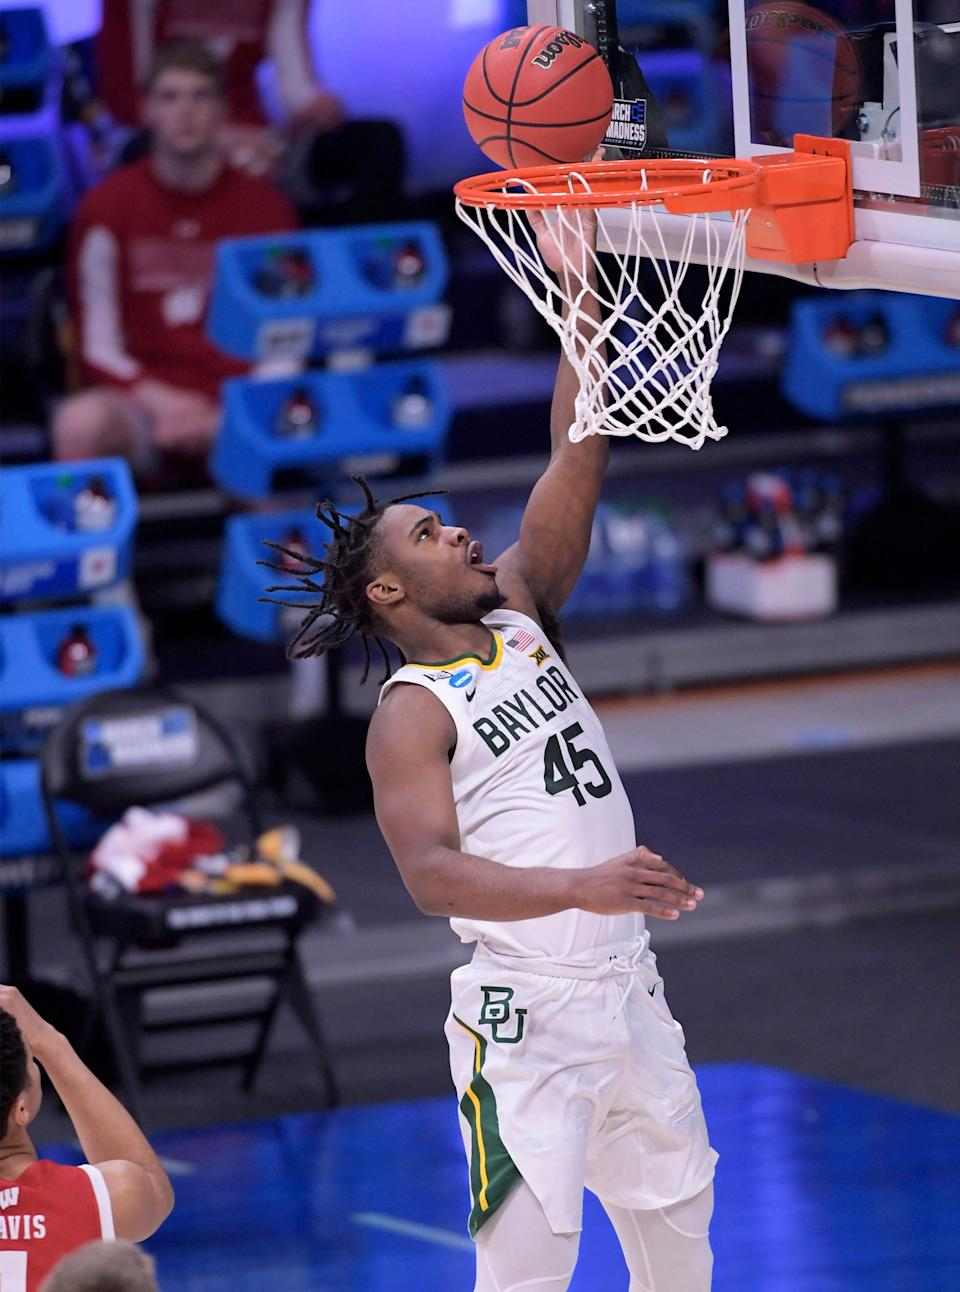 Baylor guard Davion Mitchell says the extra practice time before the NCAA Tournament - courtesy of an early exit from the Big 12 tournament - helped the Bears tighten up their defense.